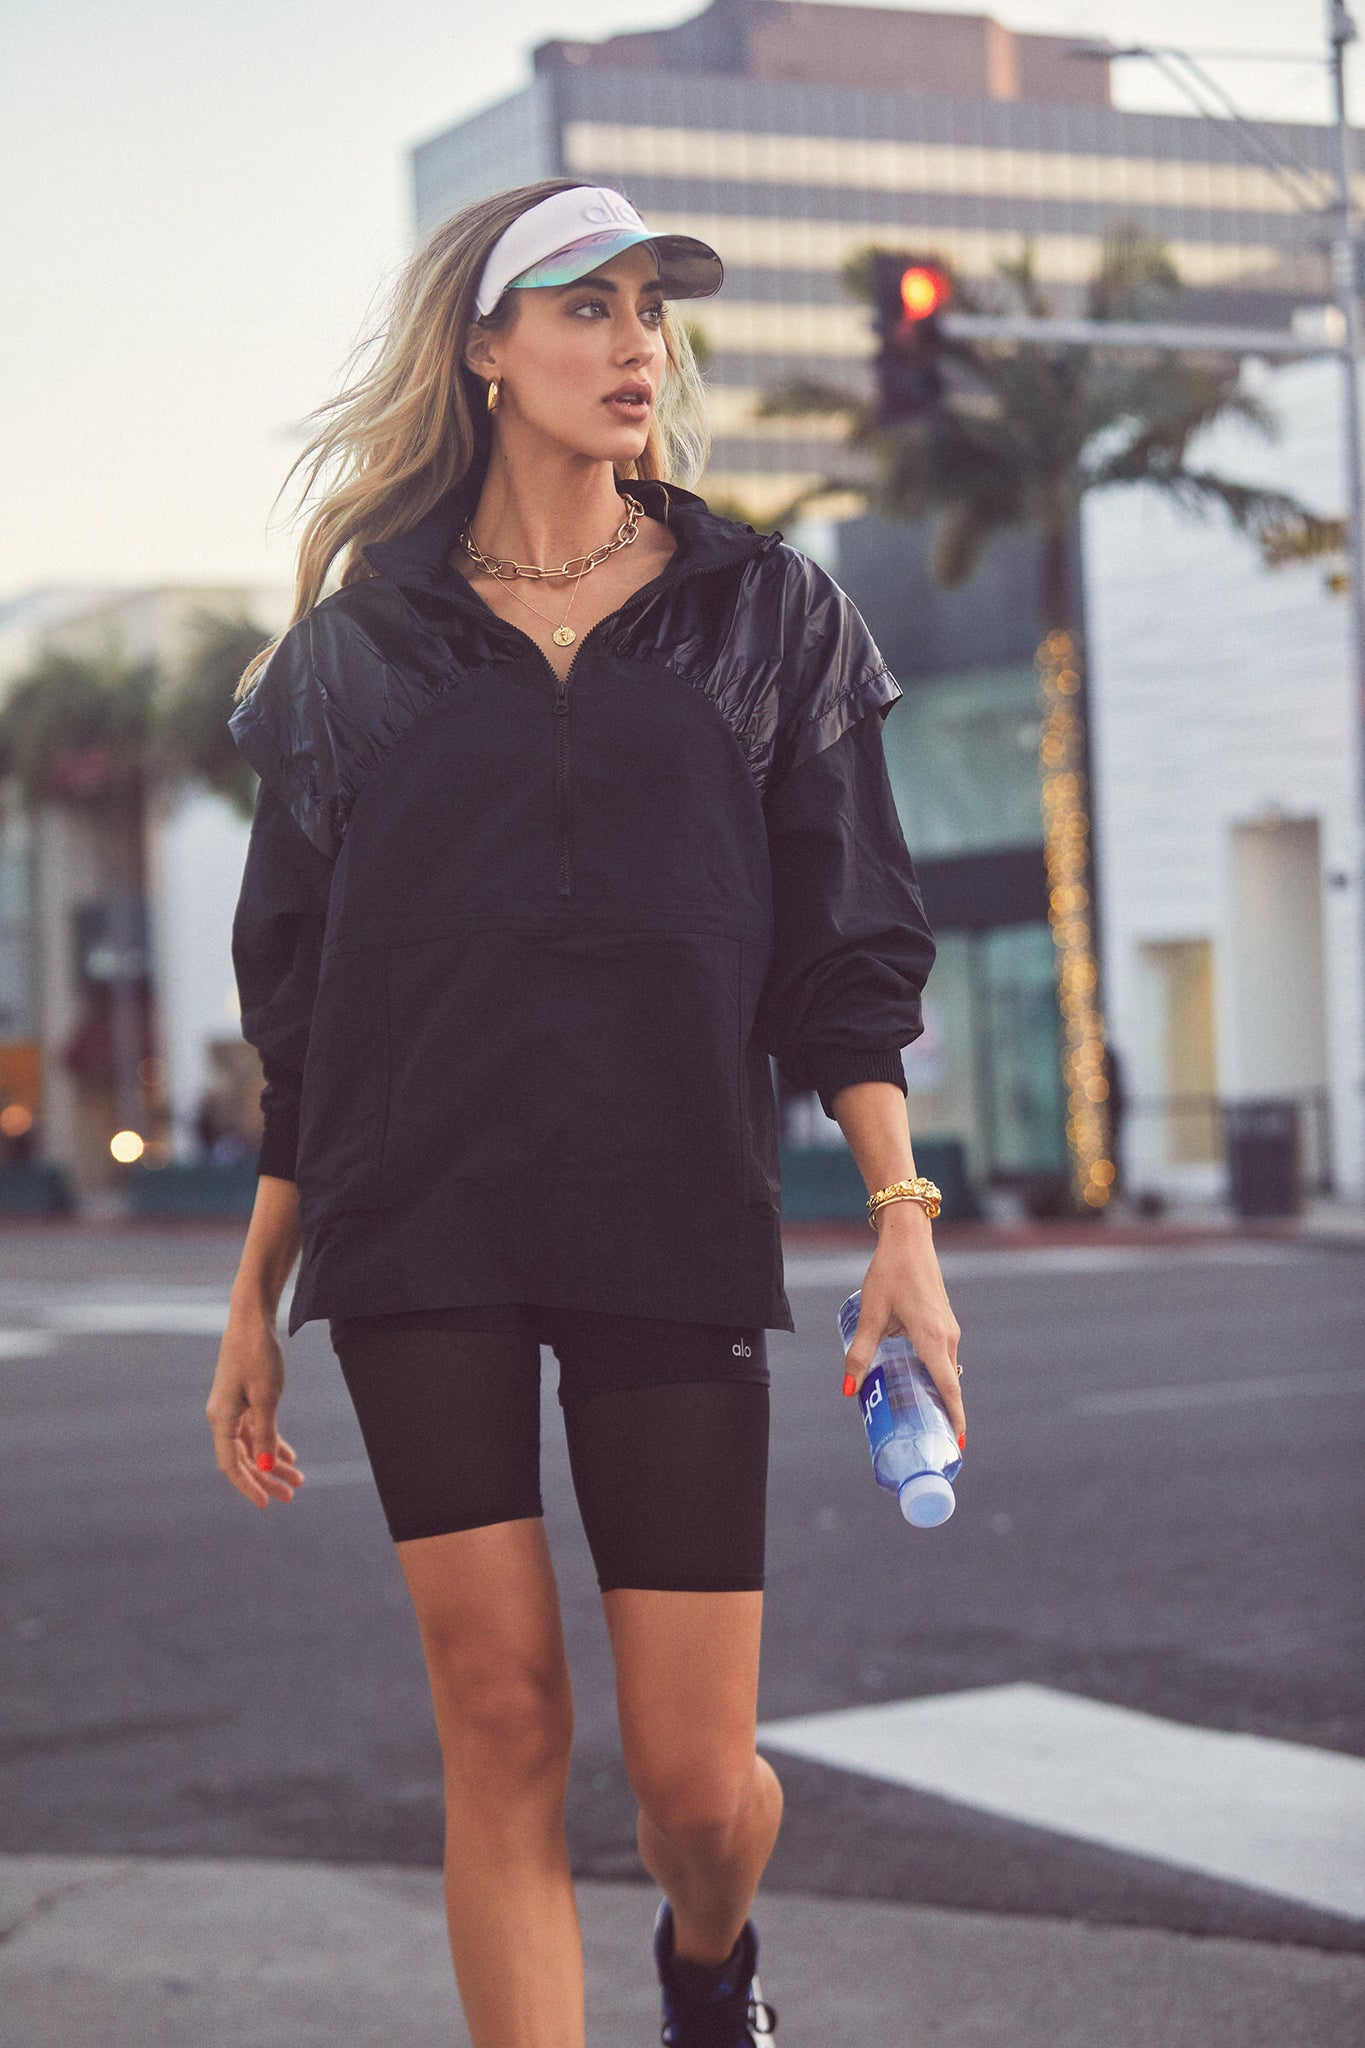 @jessicamichel wearing black biker shorts, an oversized quarter zip jacket, and a holographic visor.